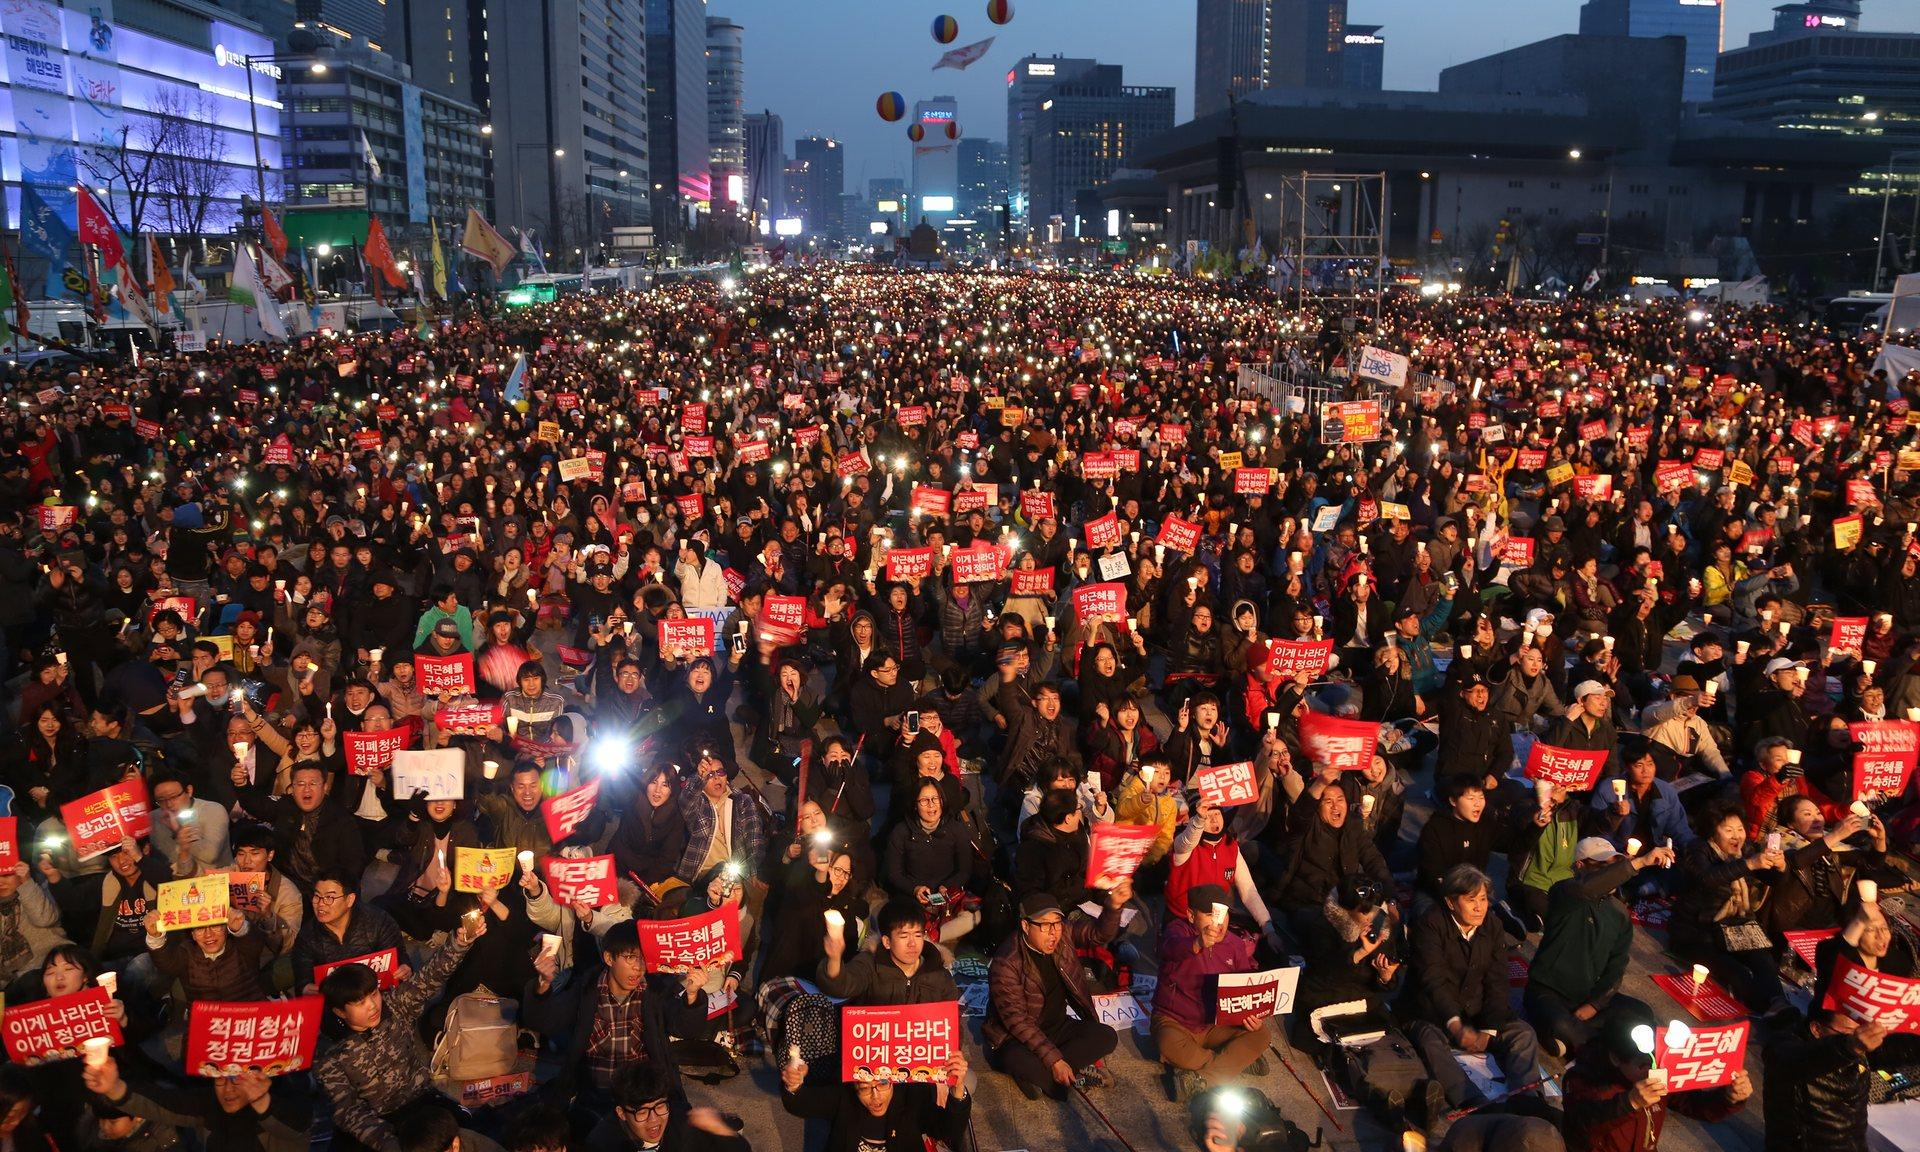 A candlelit rally in Seoul celebrates the ousting of President Park Geun-hye. || Barcroft Images